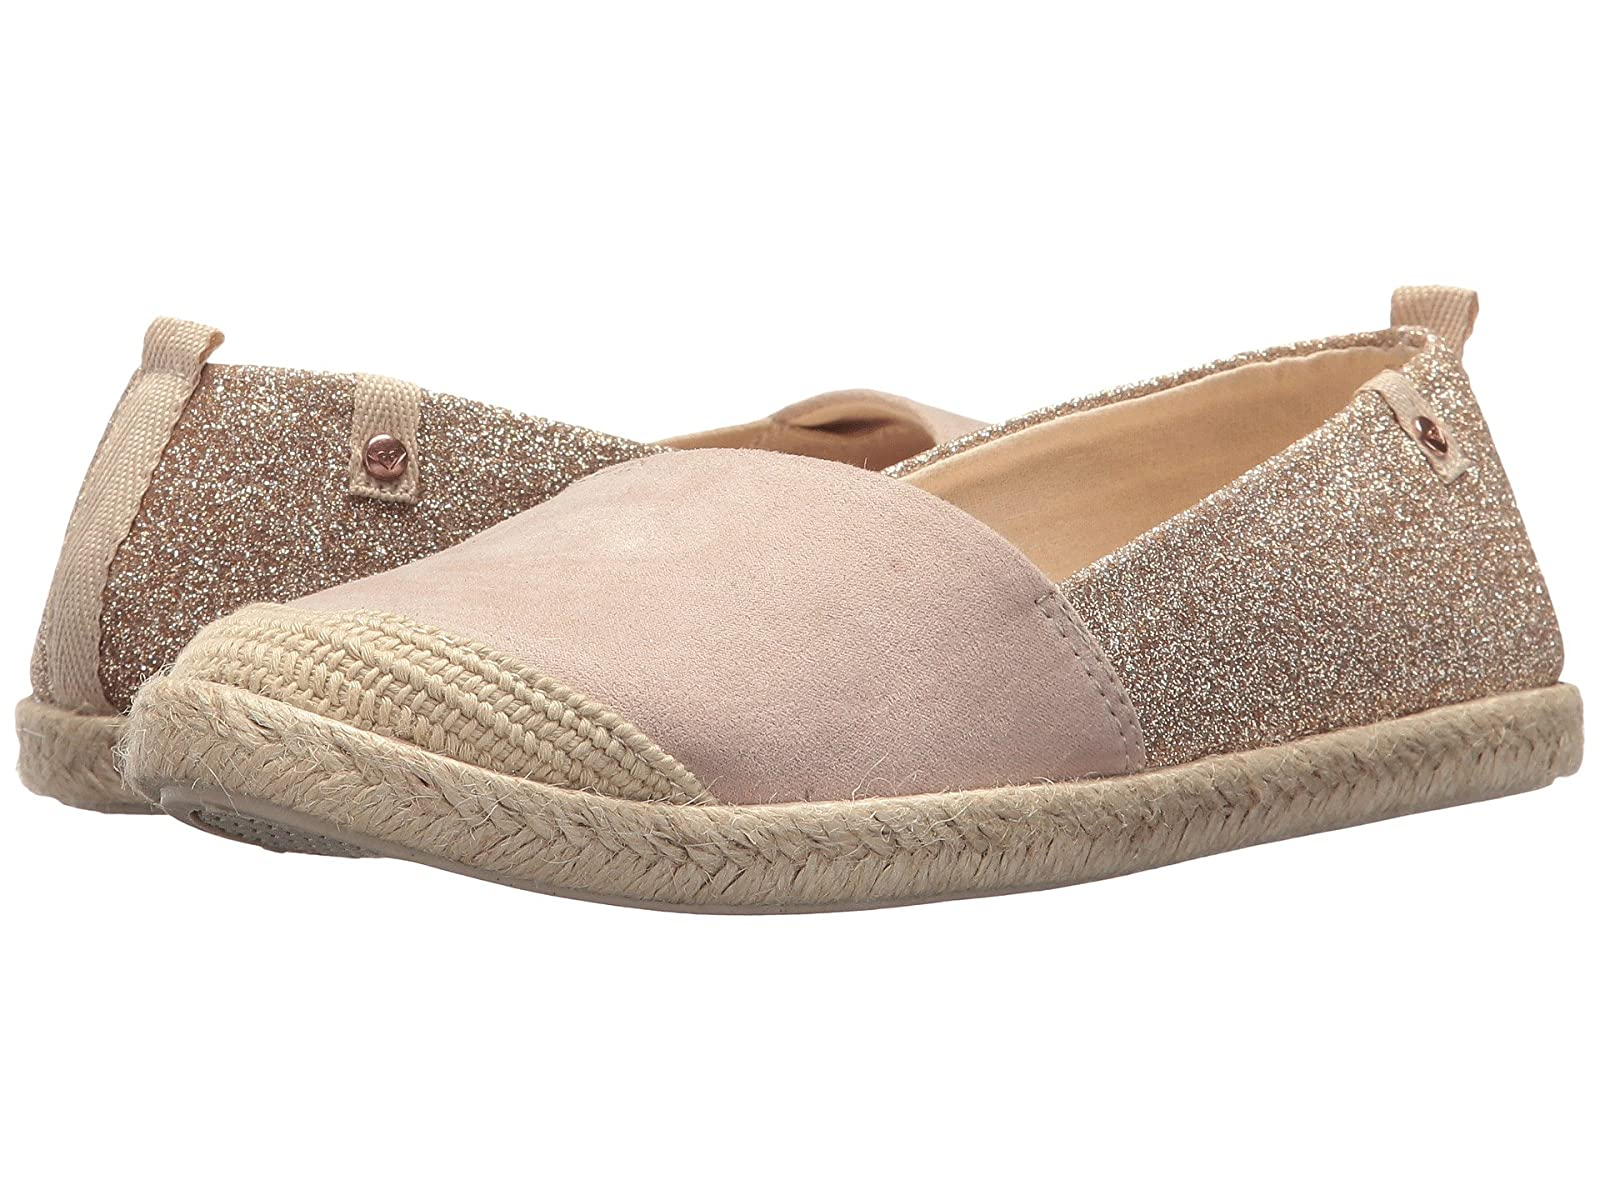 Roxy Flora IIAtmospheric grades have affordable shoes